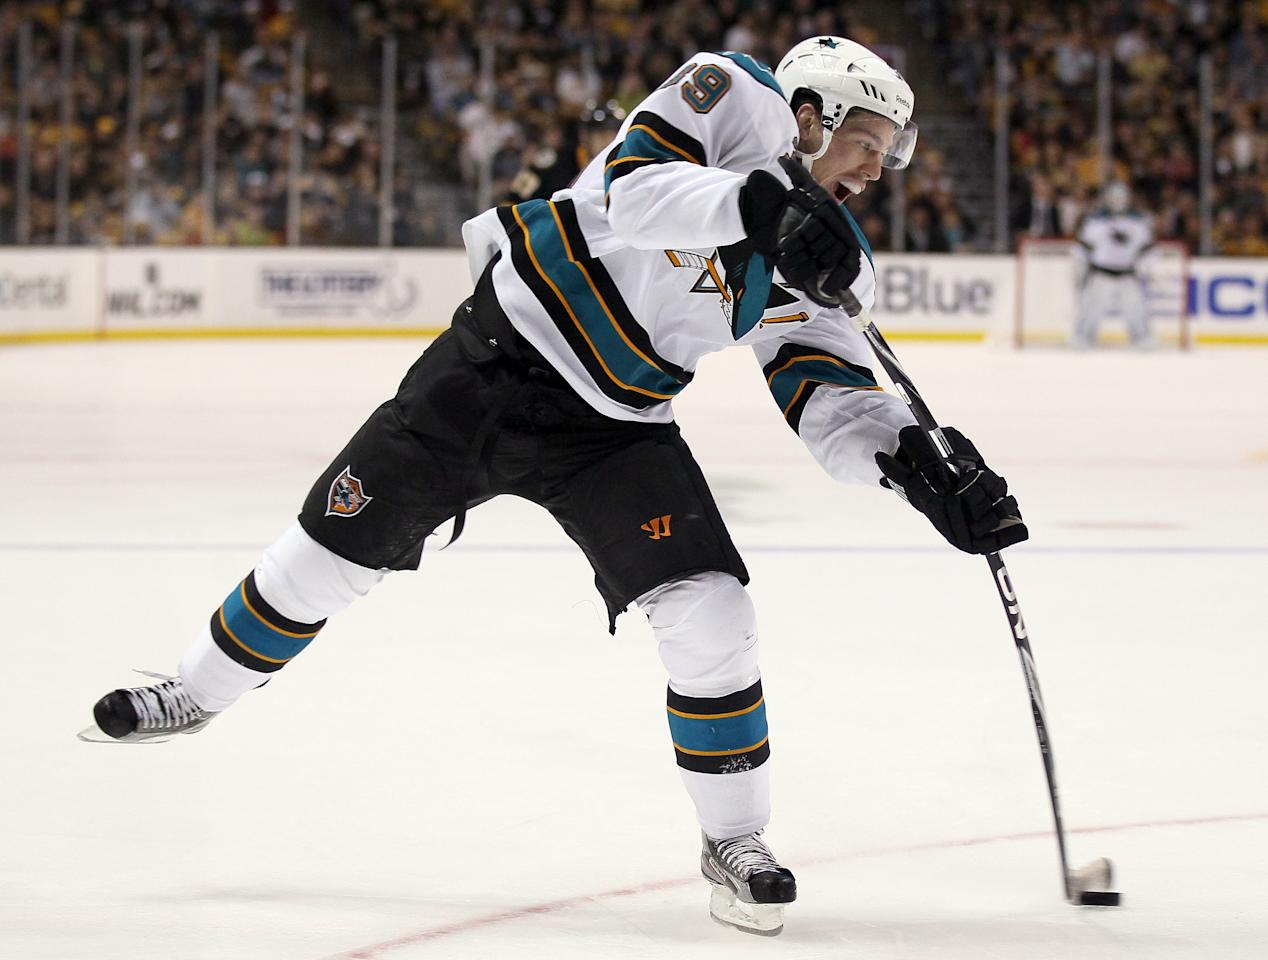 BOSTON, MA - OCTOBER 22:  Logan Couture #39 of the San Jose Sharks takes a shot in the second period against the Boston Bruins on October 22, 2011 at TD Garden in Boston, Massachusetts.  (Photo by Elsa/Getty Images)